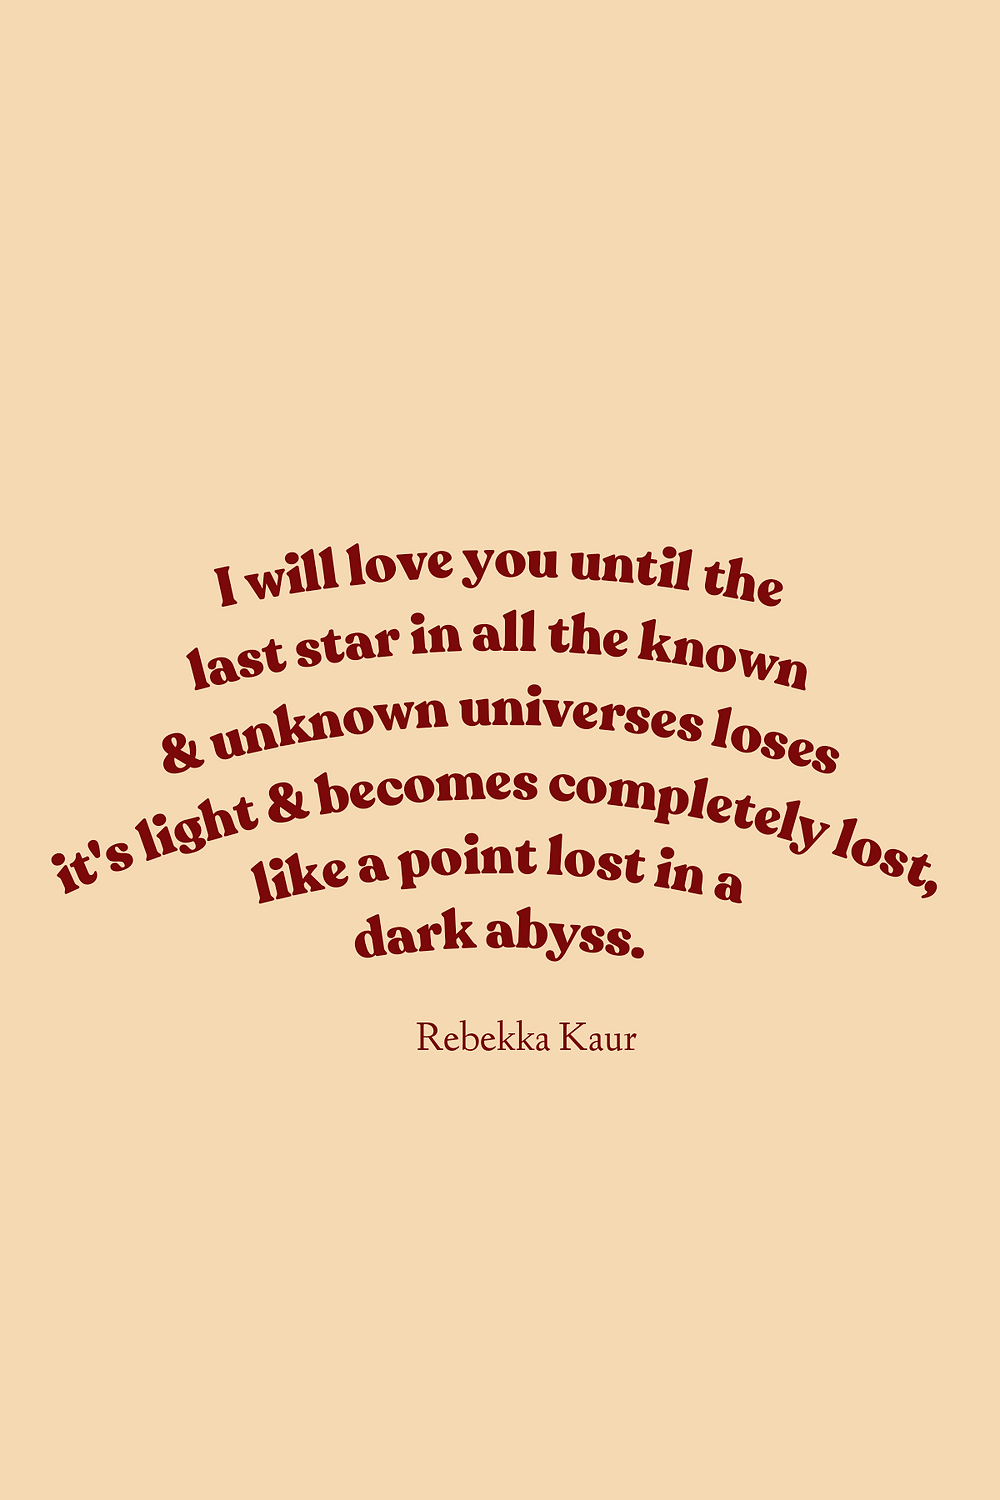 quotes about love and stars